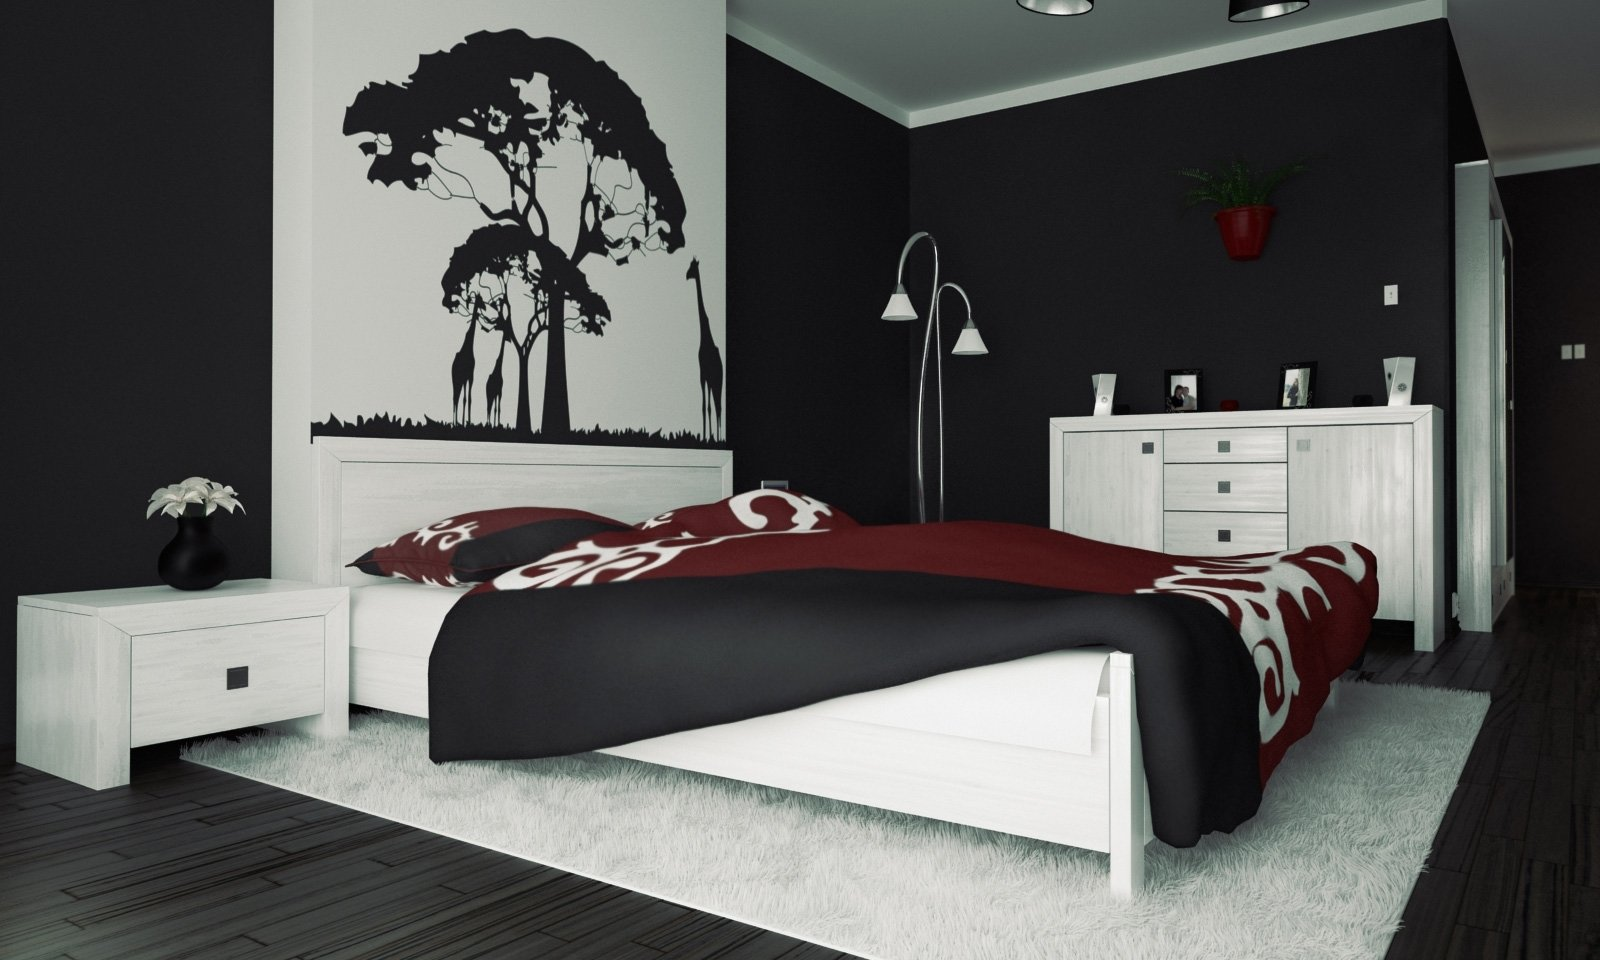 10 Ideal Black And White Painting Ideas 3 black and white bedroom ideas midcityeast 2020